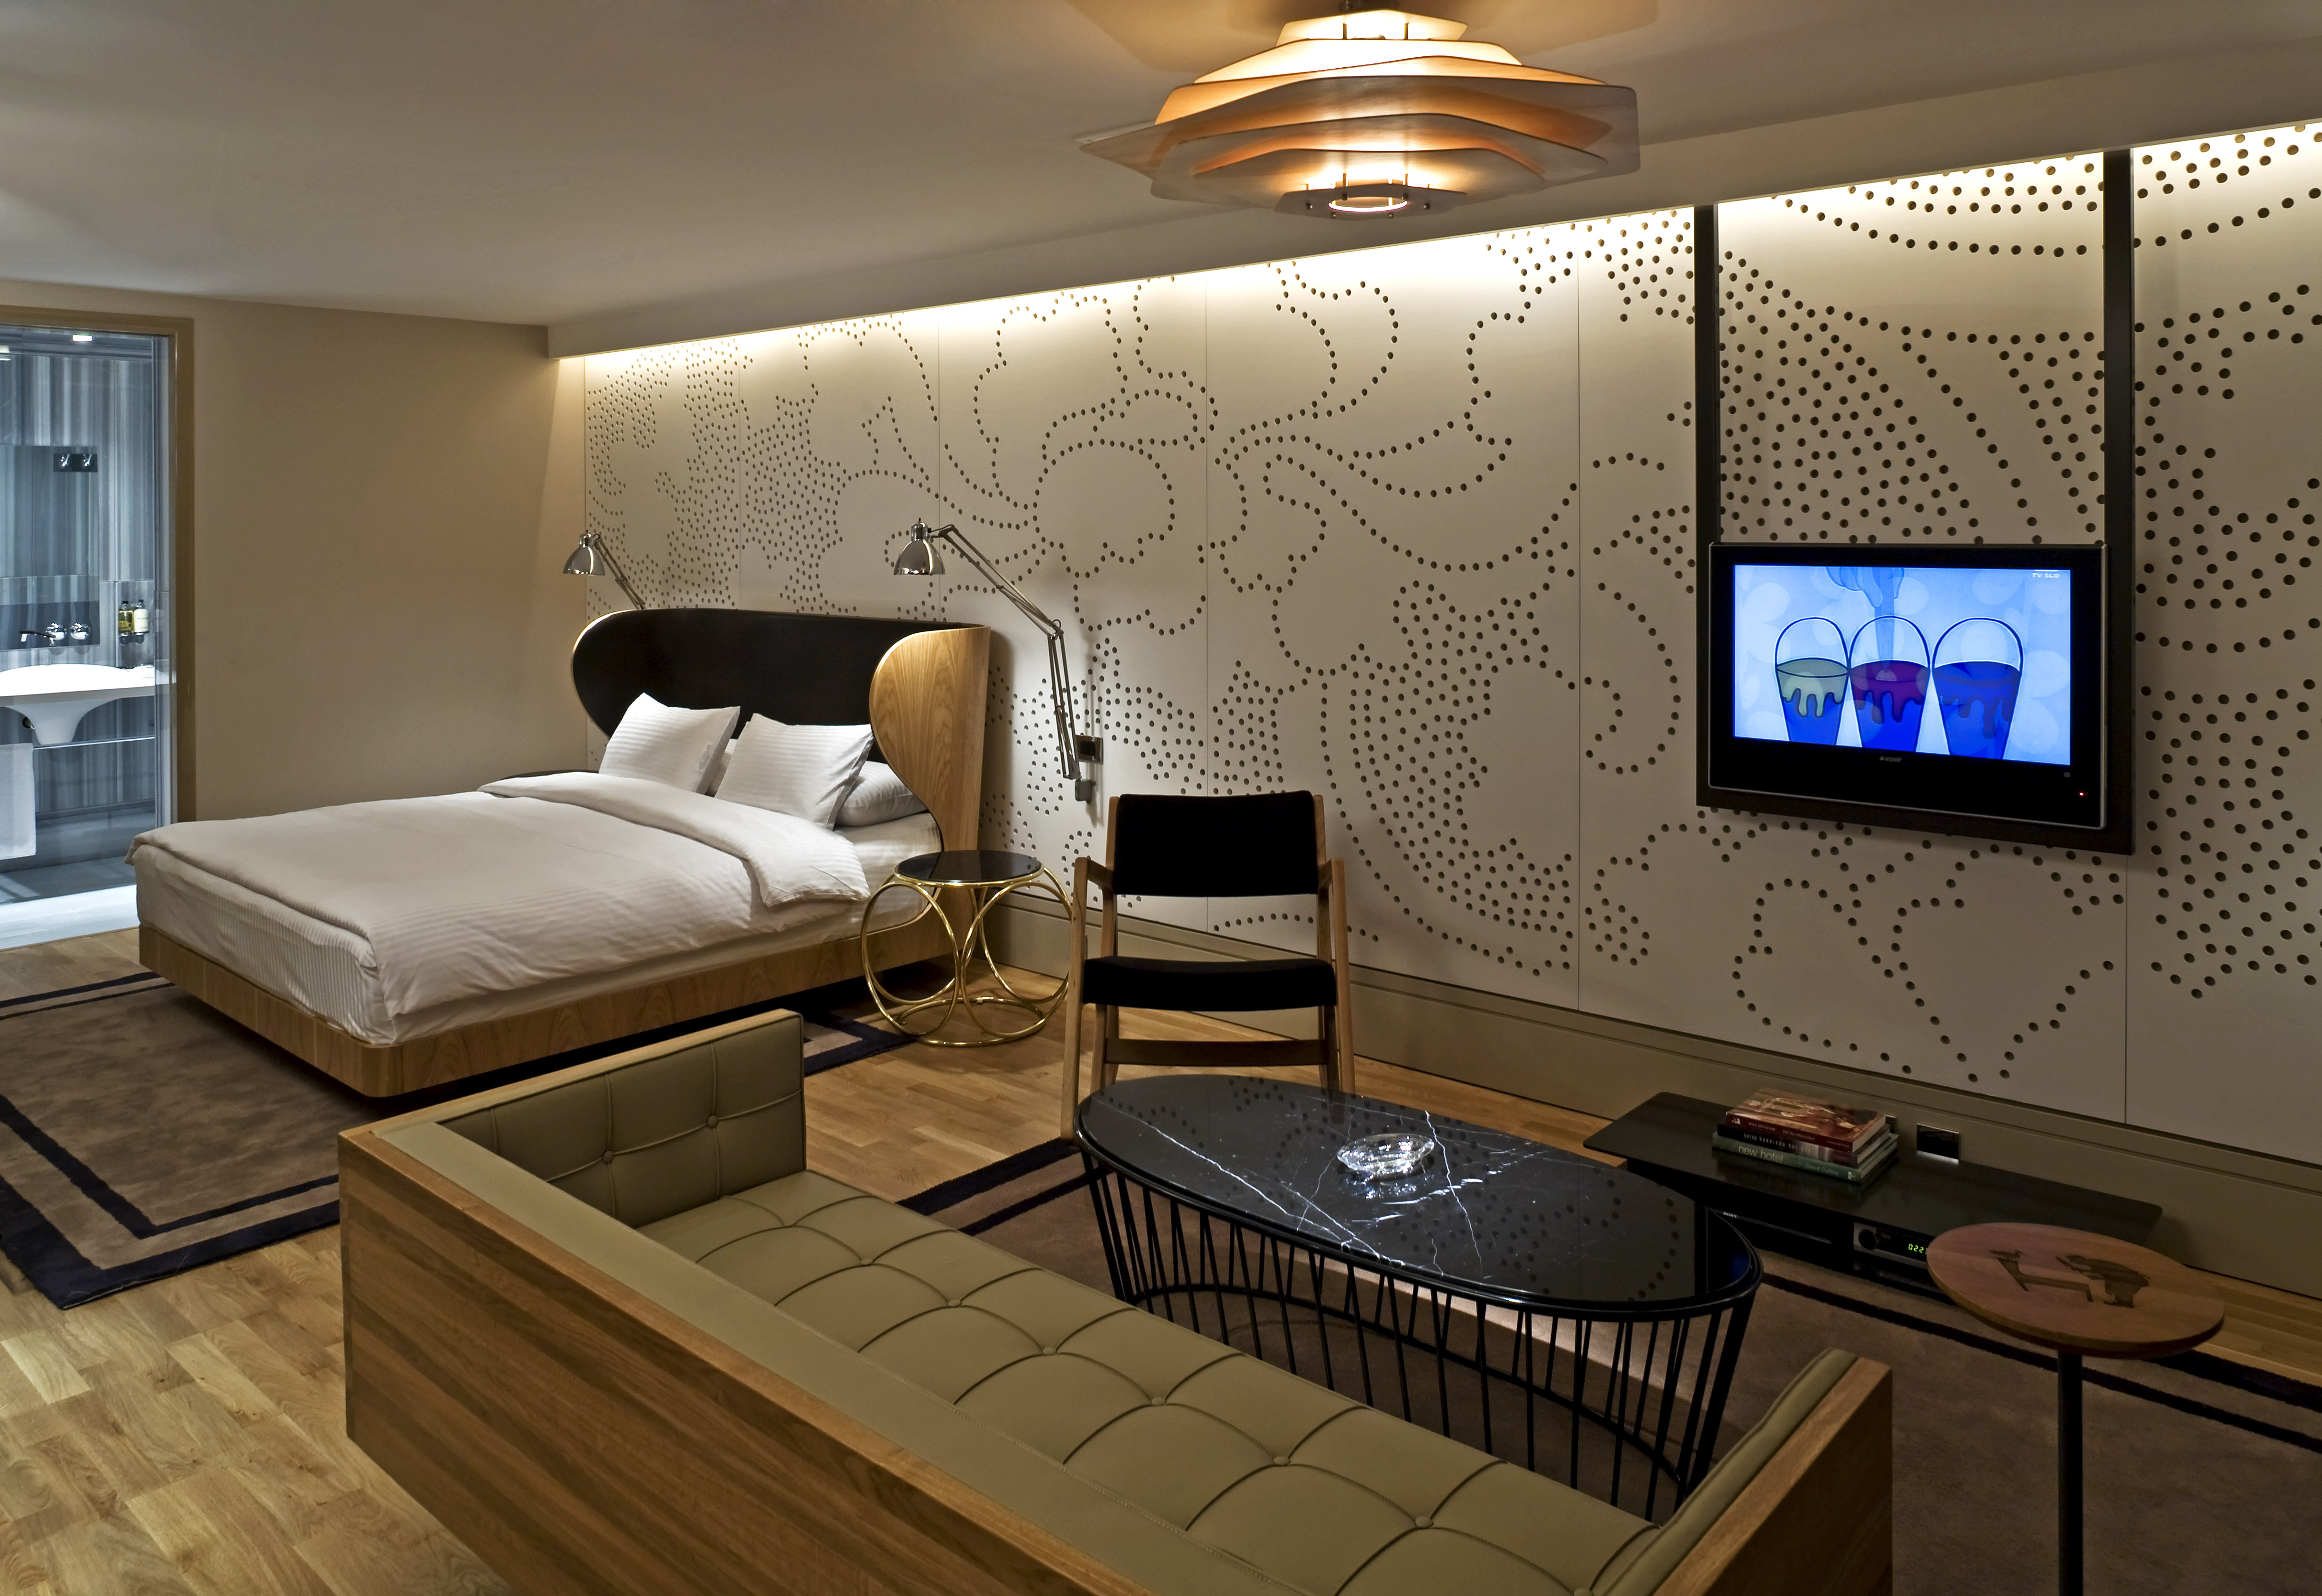 Witt istanbul hotel best luxury hotels in istanbul top 10 source